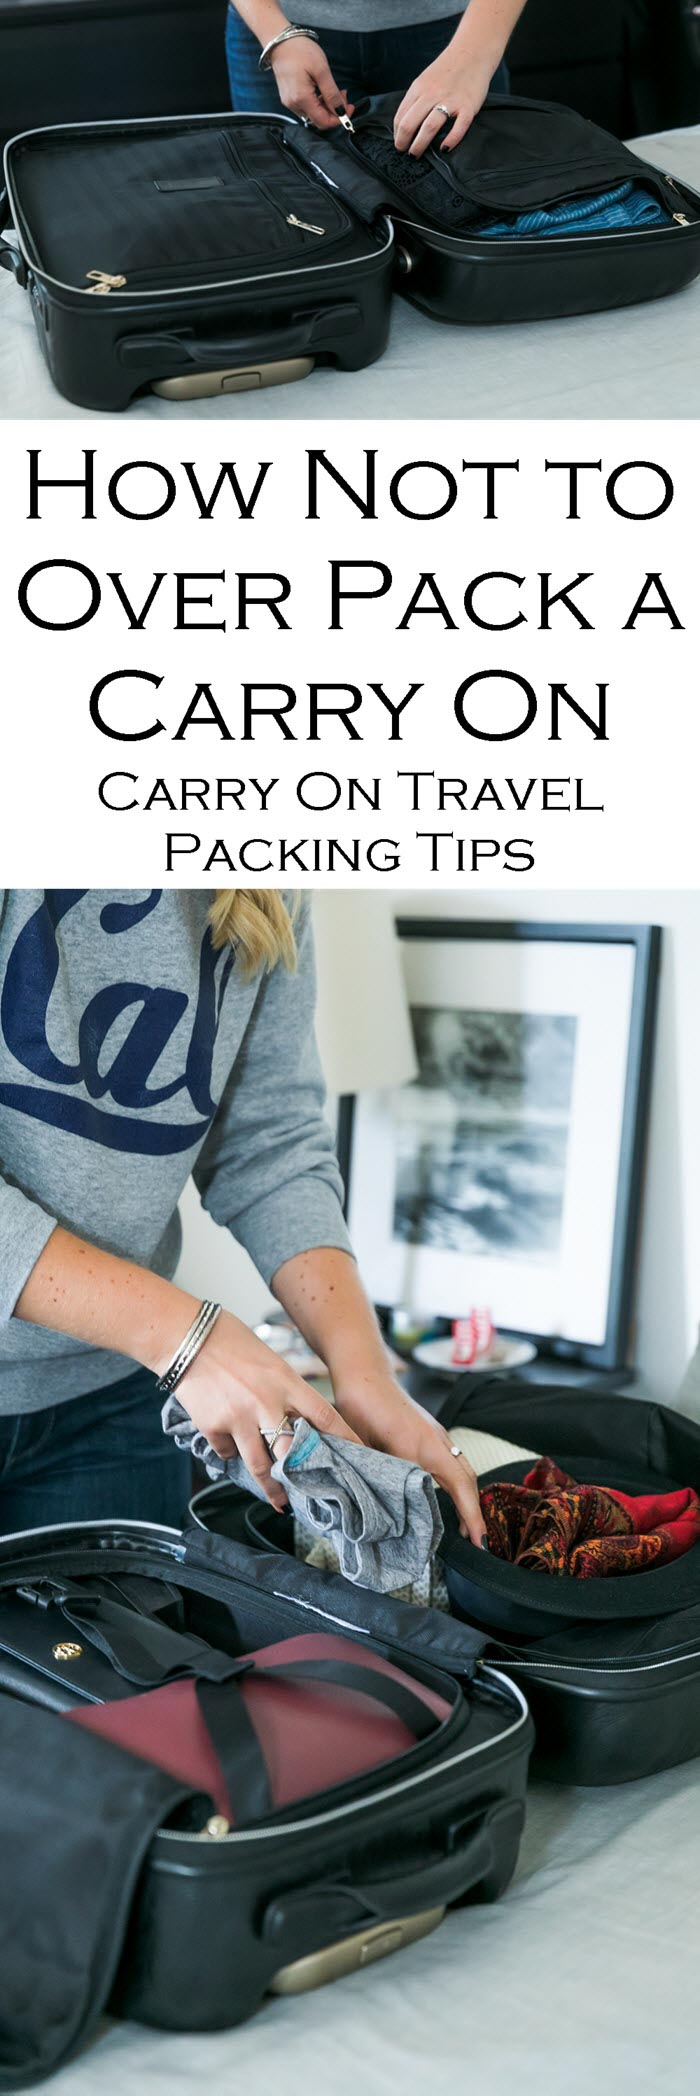 Carry On Travel Packing Tips - How Not to Over Pack a Carry On #travel #traveltips #carryon #luggage #packing #travelblogger #weekendtrip